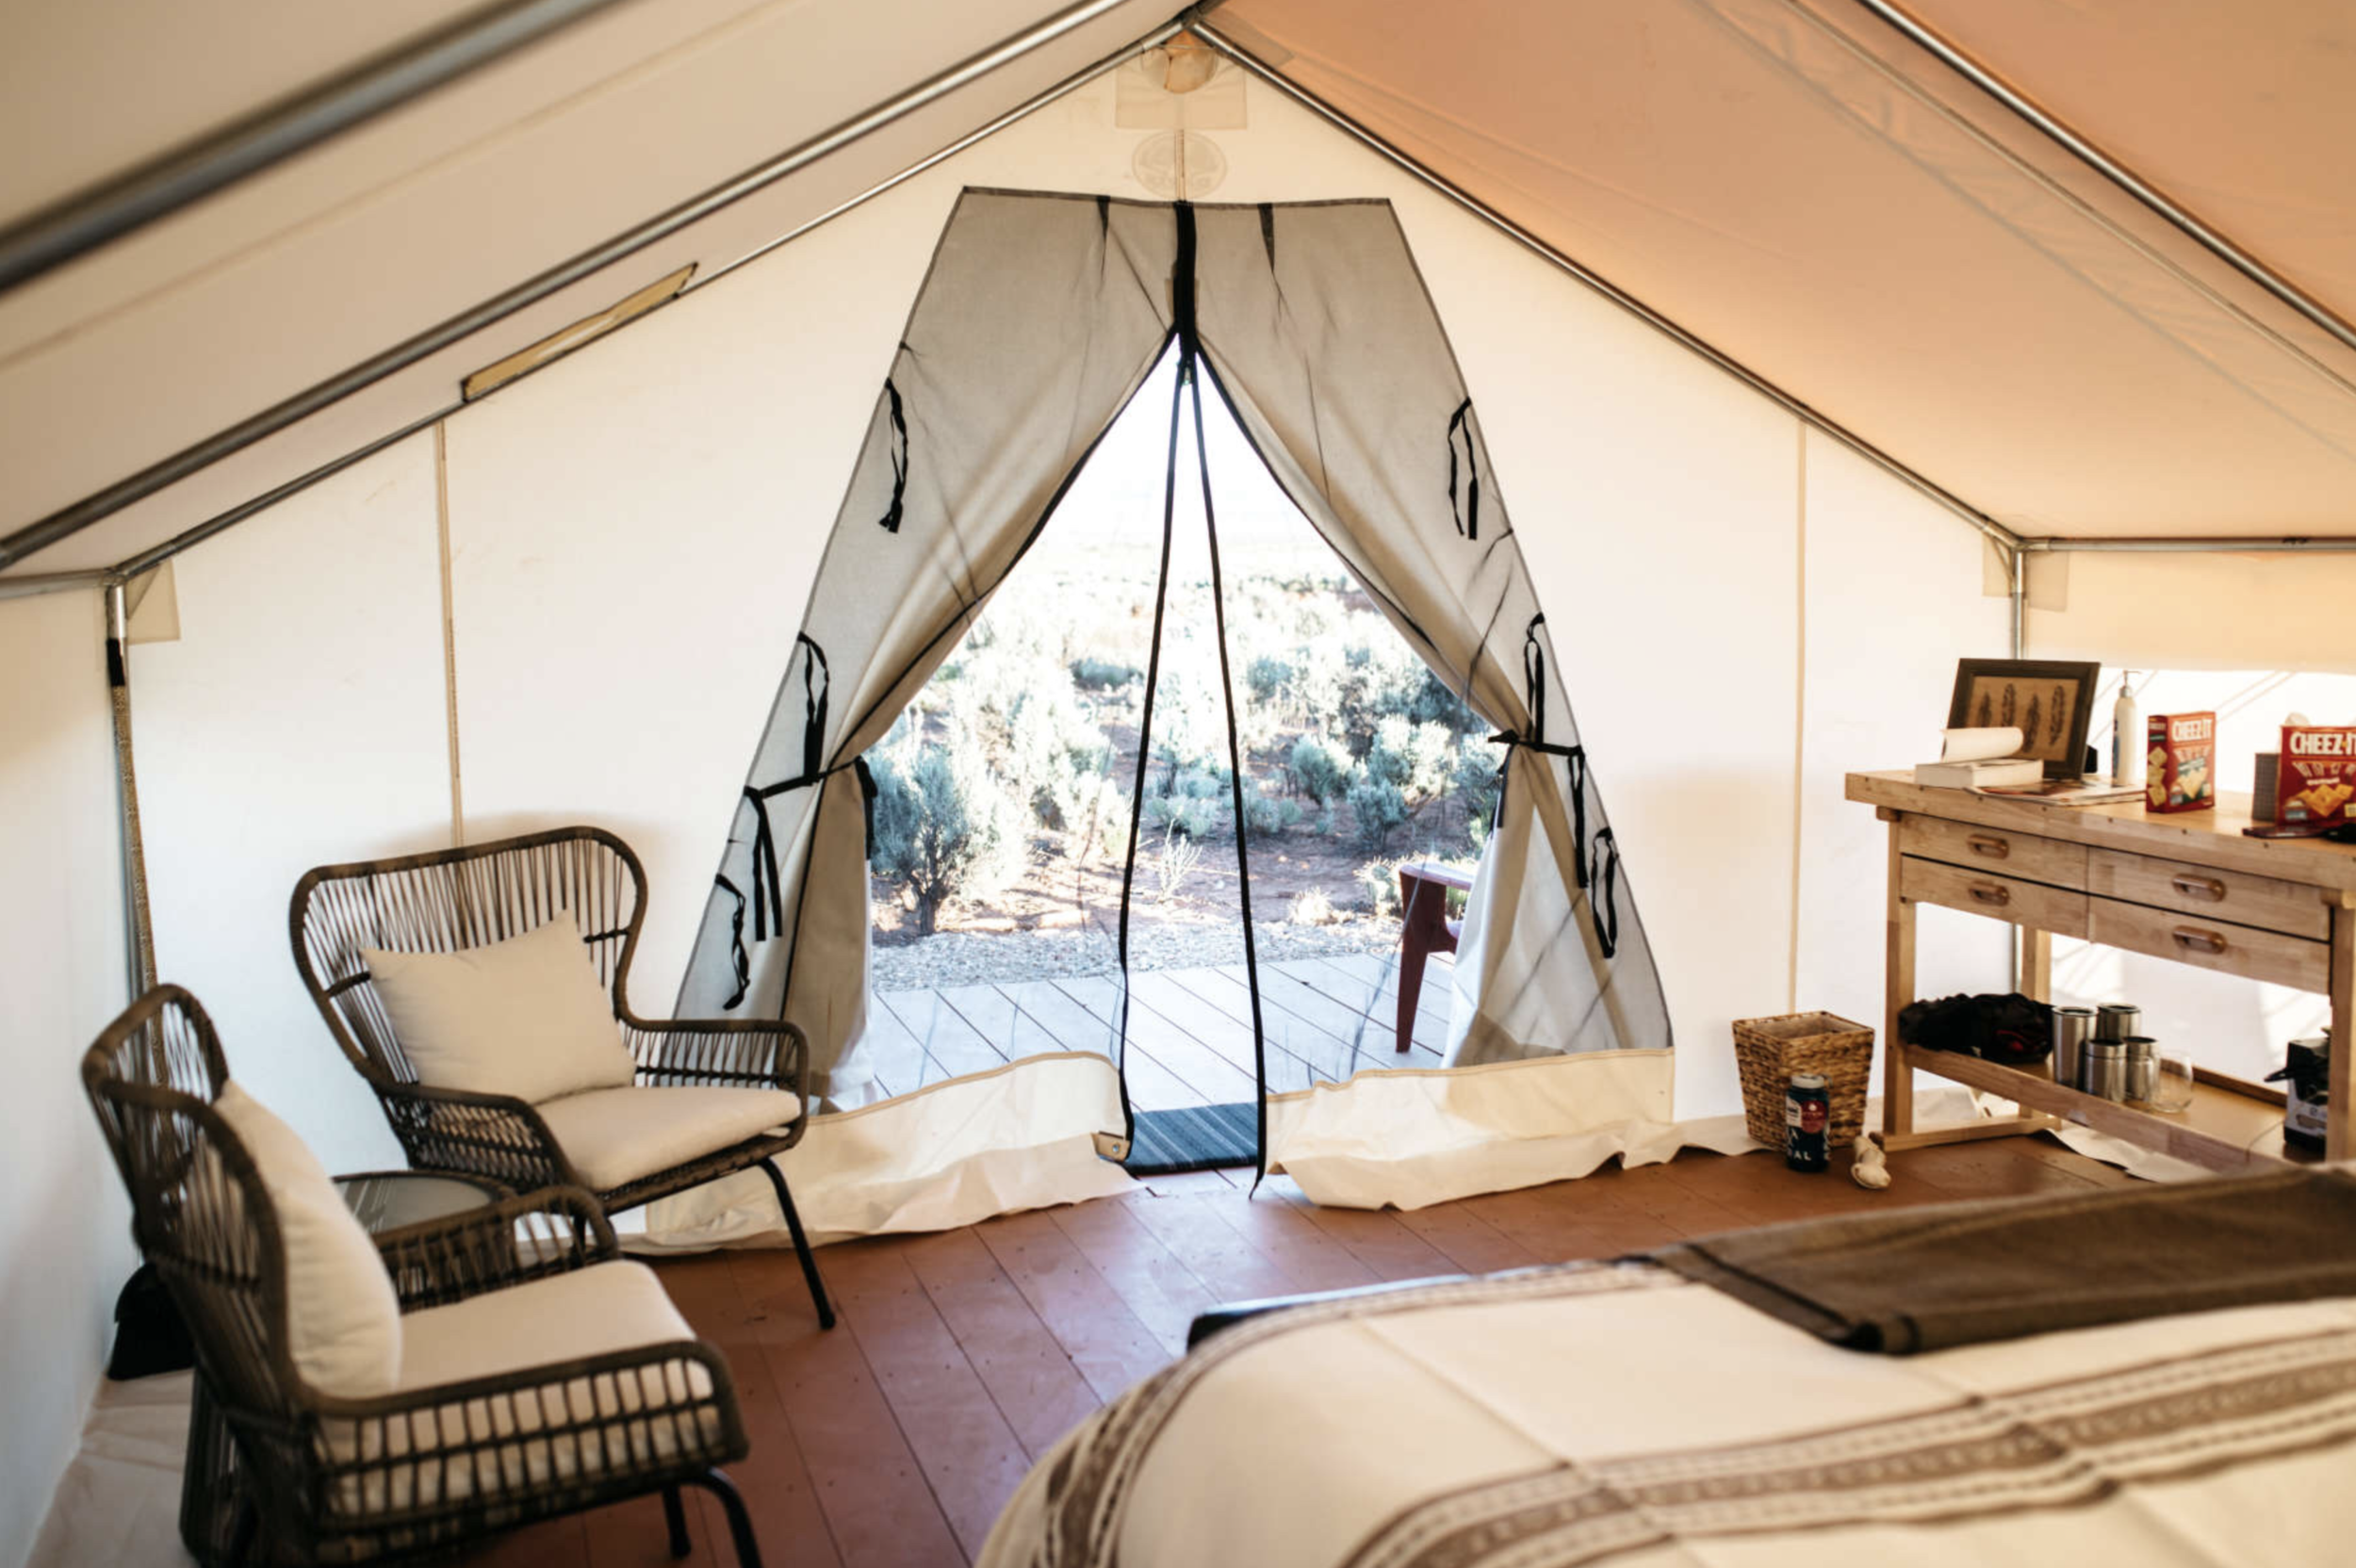 The Josey Wales Tent -